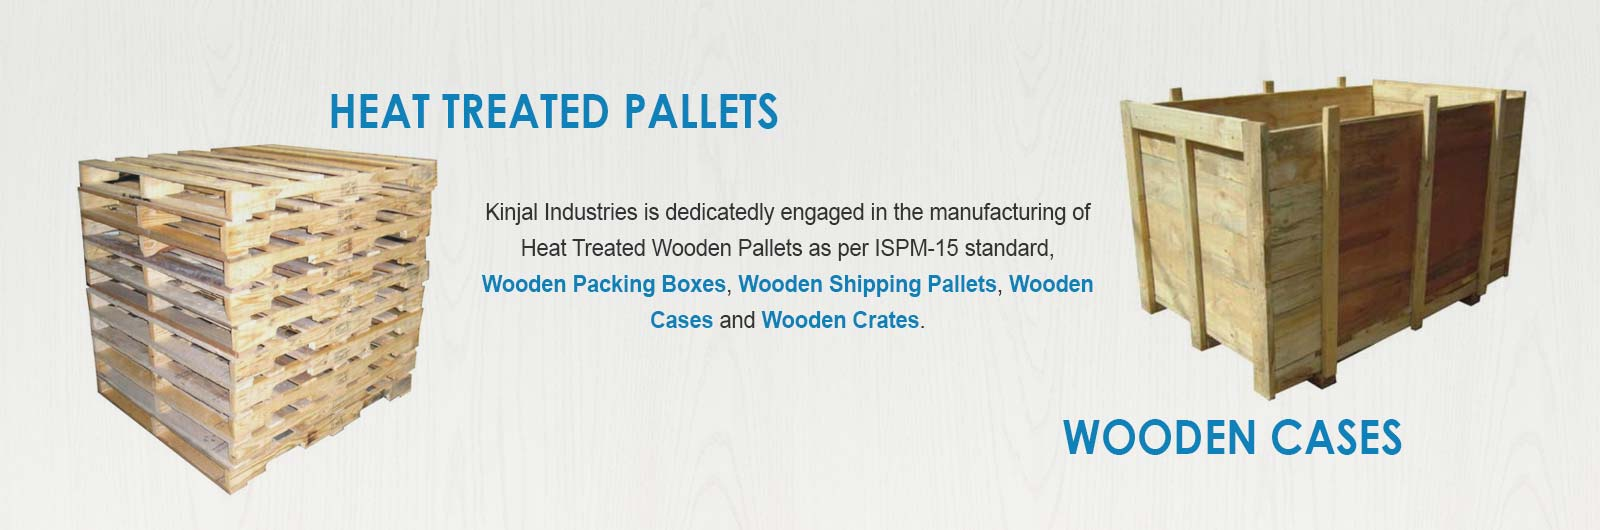 Heat Treated Pallets, Wooden Cases Manufacturers in Kutch